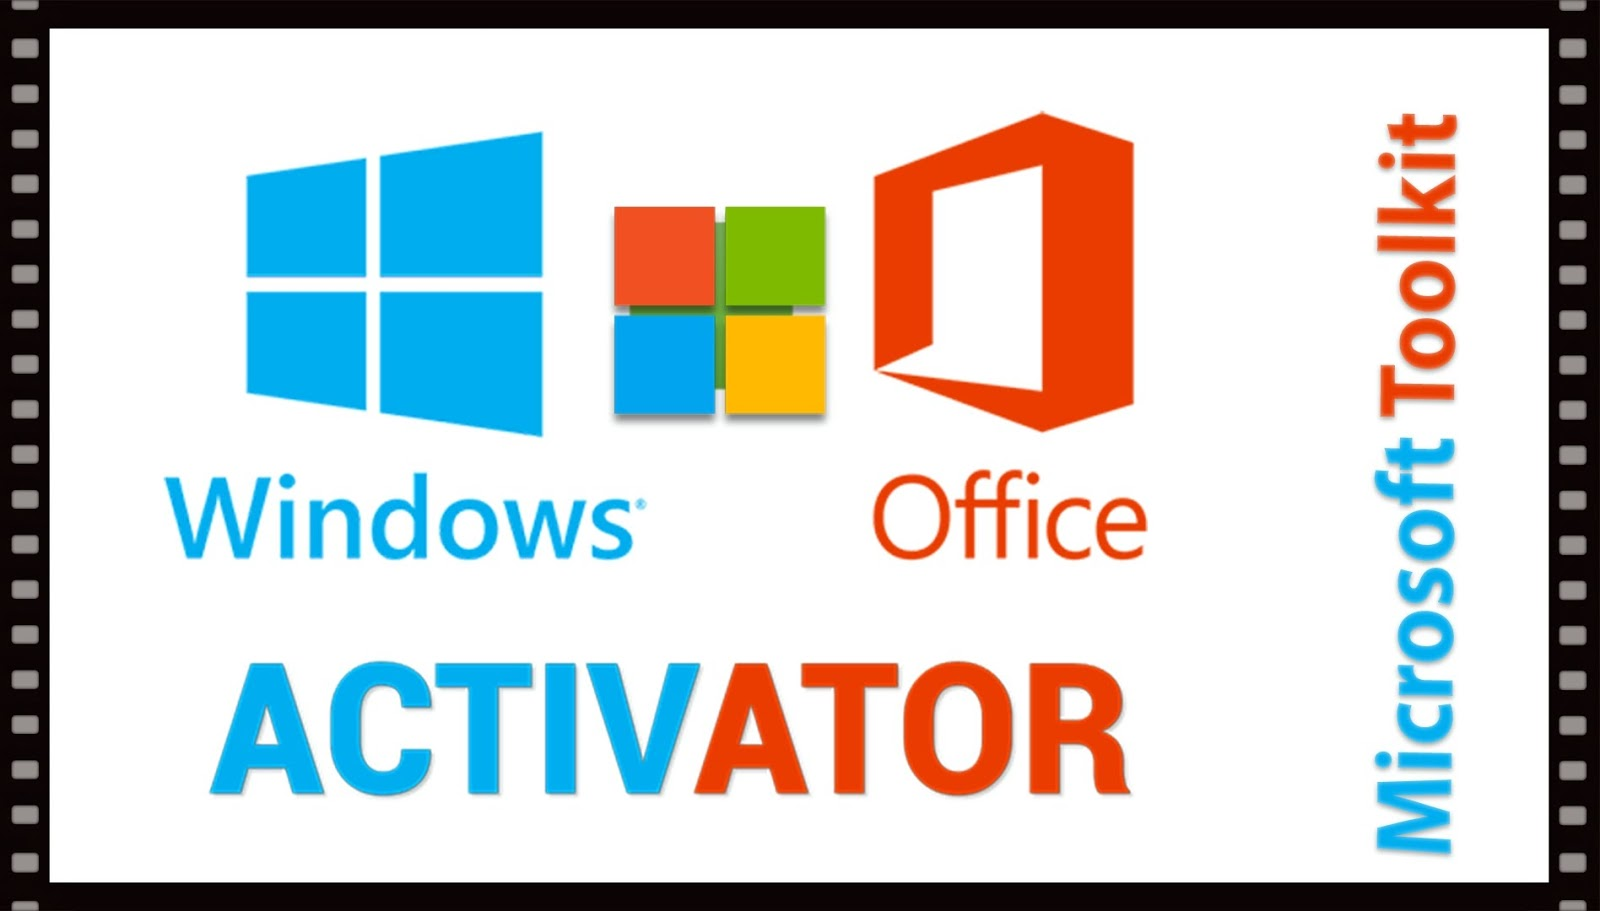 microsoft office 2013 activator free download